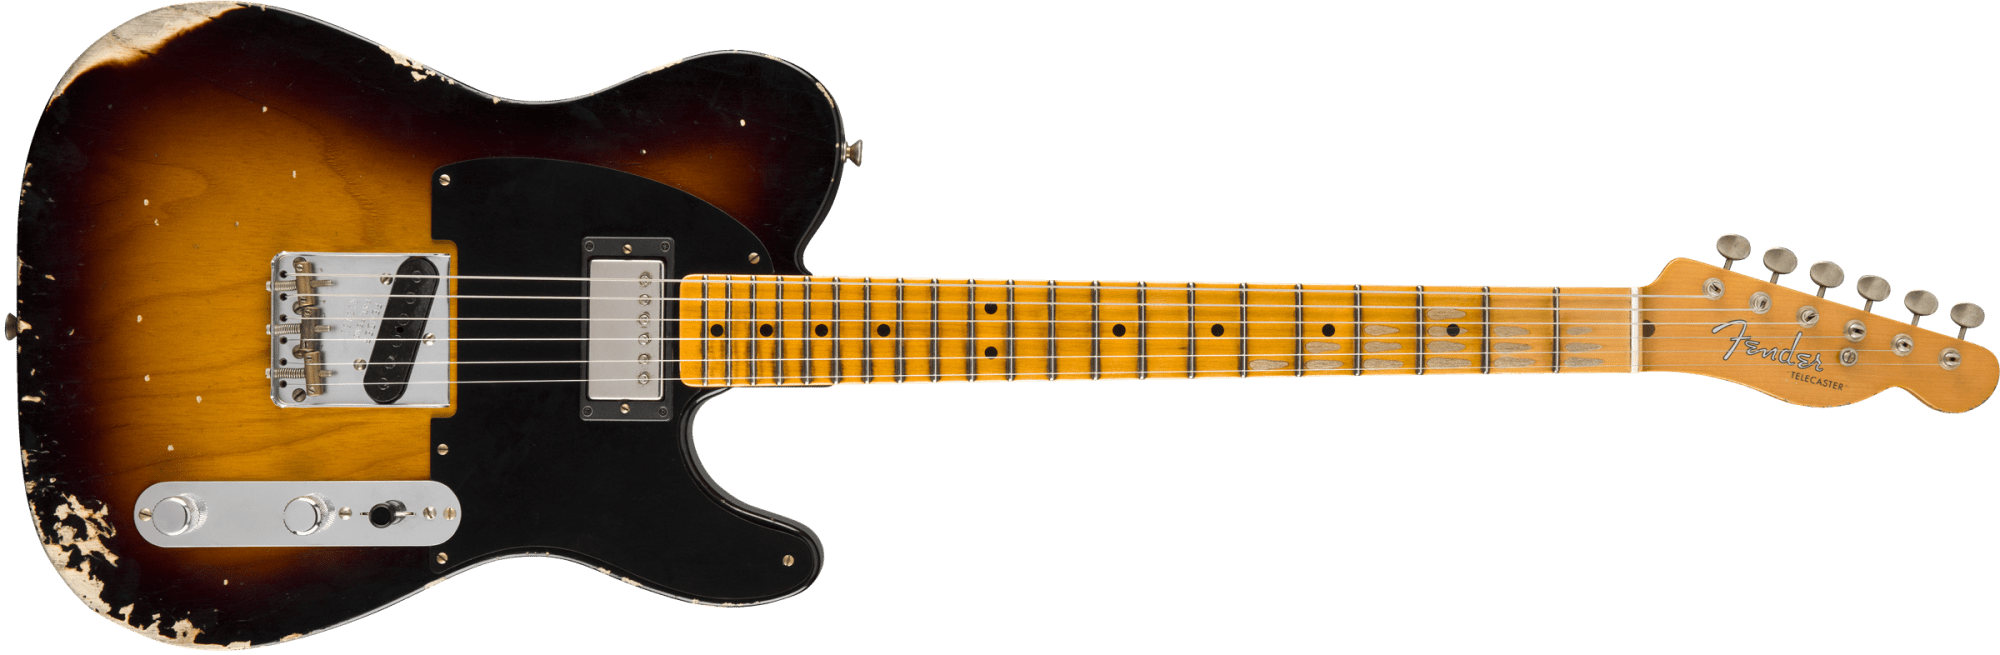 hight resolution of limited edition 51 hs tele relic